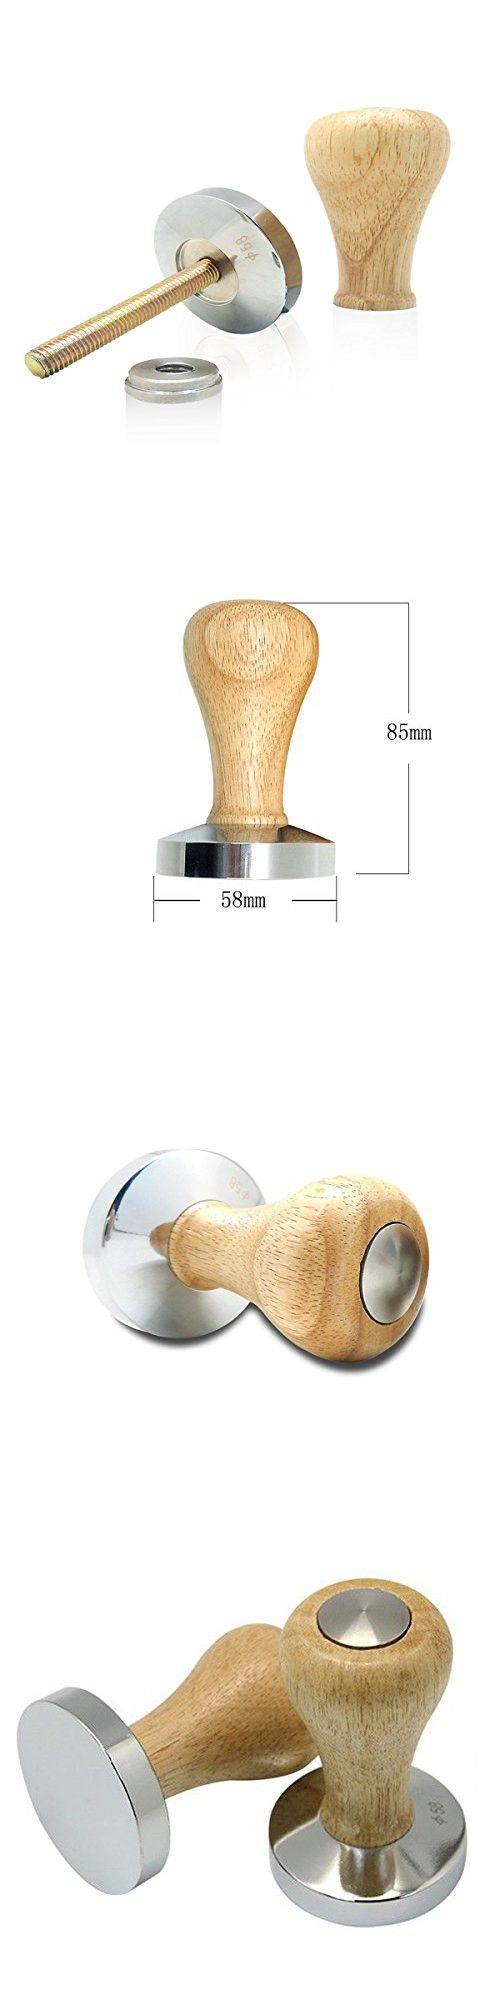 Bluefun Coffee Tamper Stainless Steel Disassembly Handle Barista Espresso Tamper (51mm)